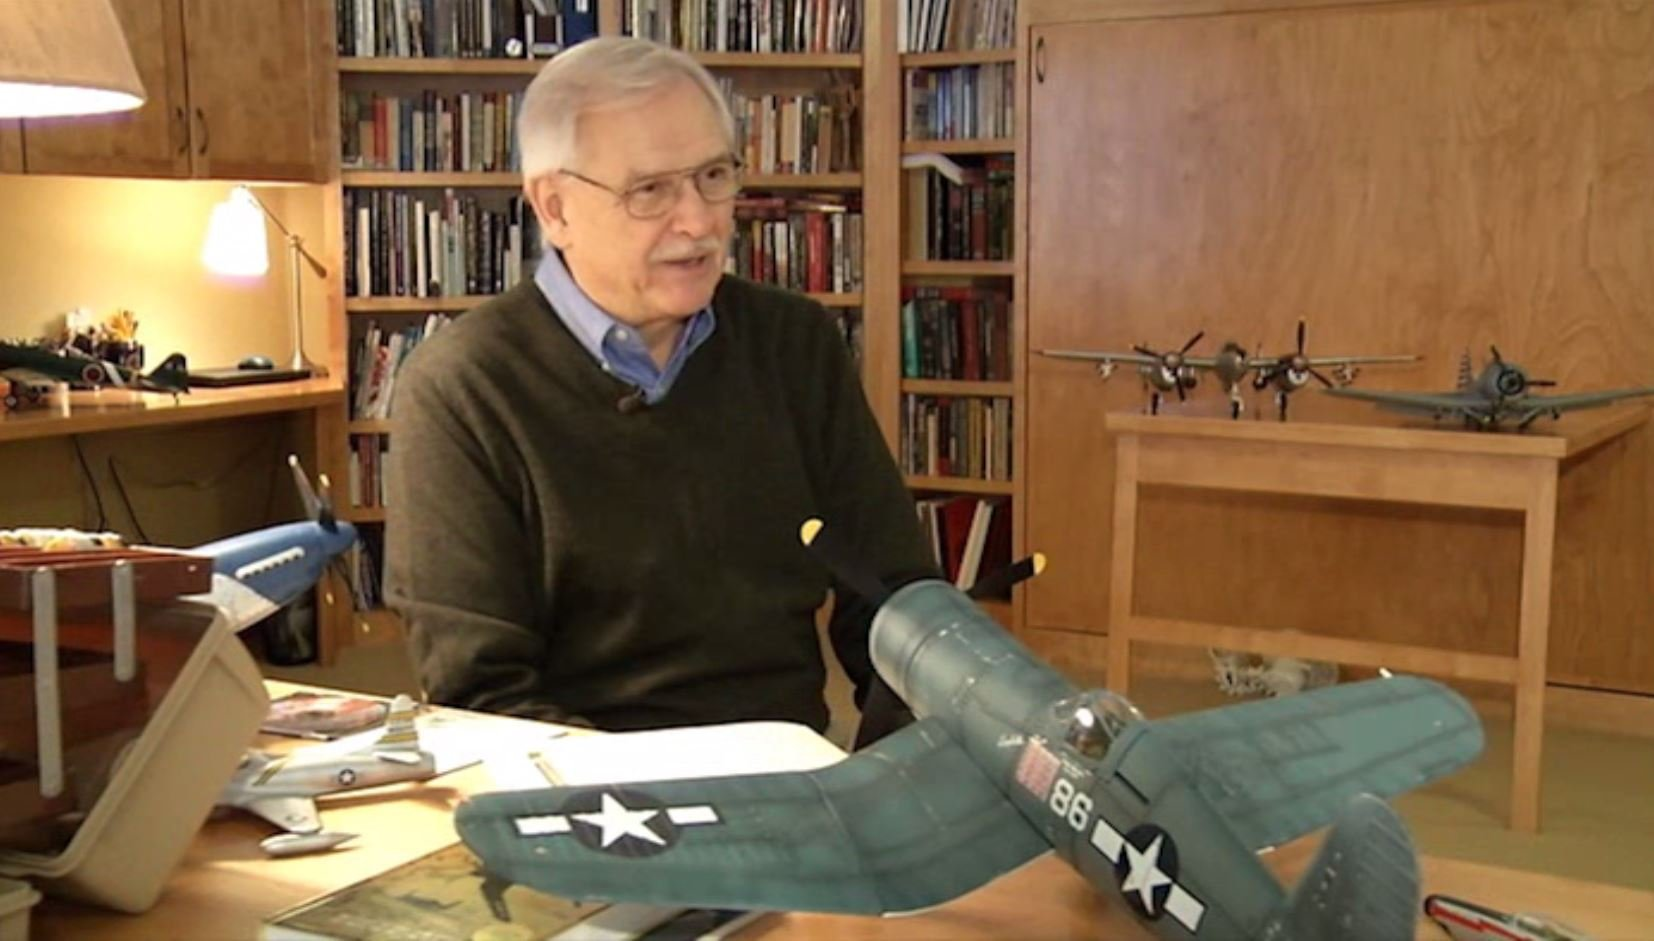 Tom Brinkman has spent a lifetime loving, studying and creating World War II aircraft